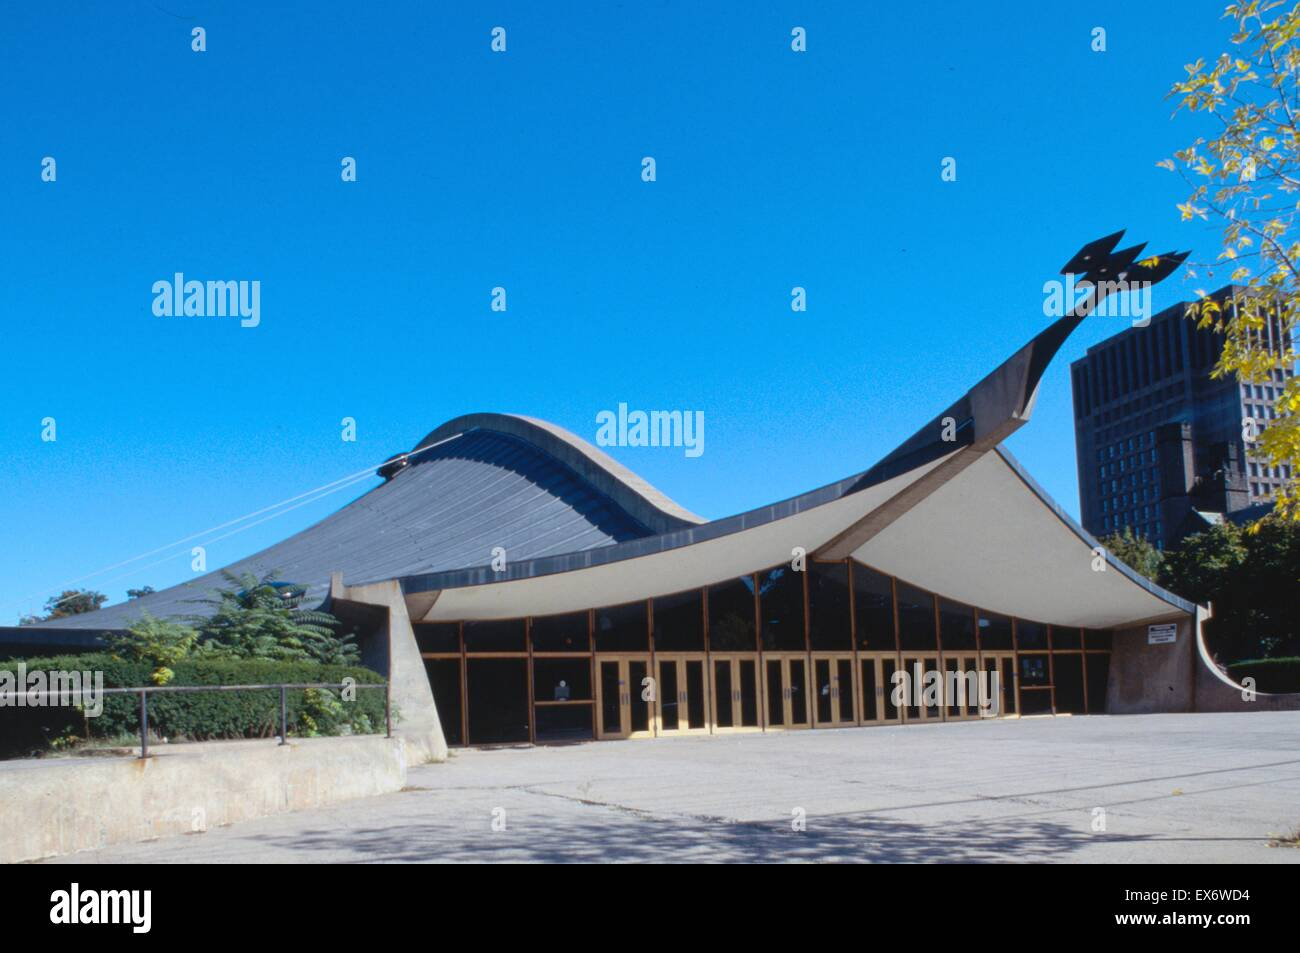 Photograph of Yale University, David S. Ingalls Hockey Rink, New Haven, Connecticut. Photographed by Balthazar Korab - Stock Image